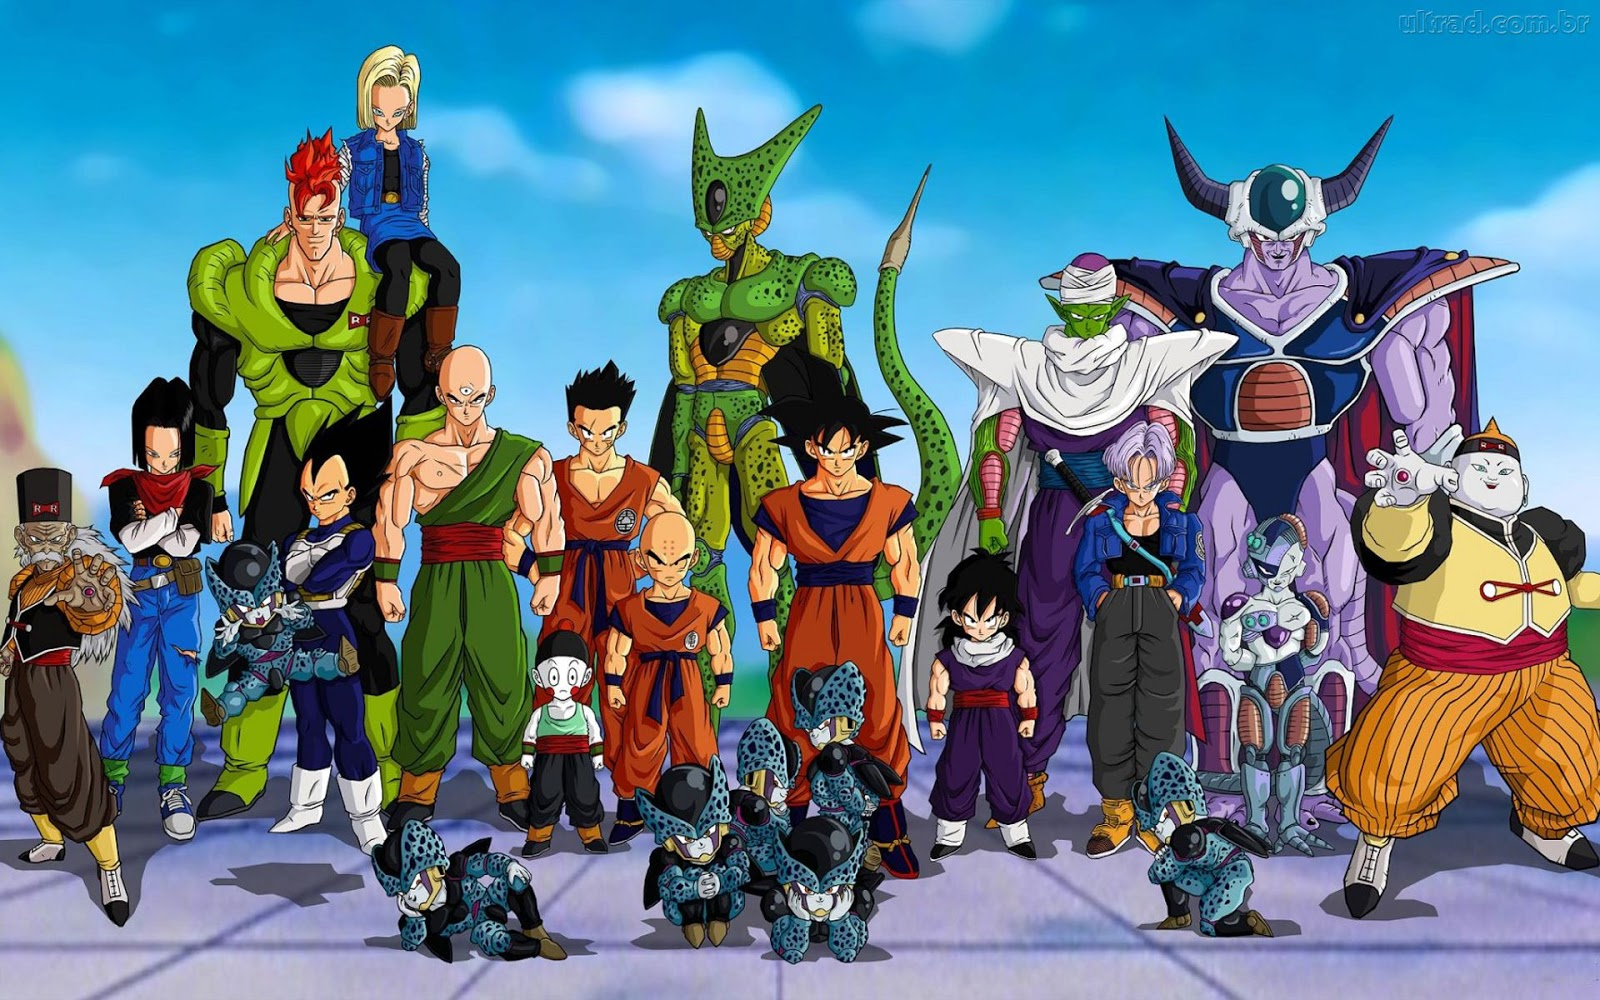 Papel-de-Parede-Dragon-Ball-Z-Saga-Cell_1920x1200